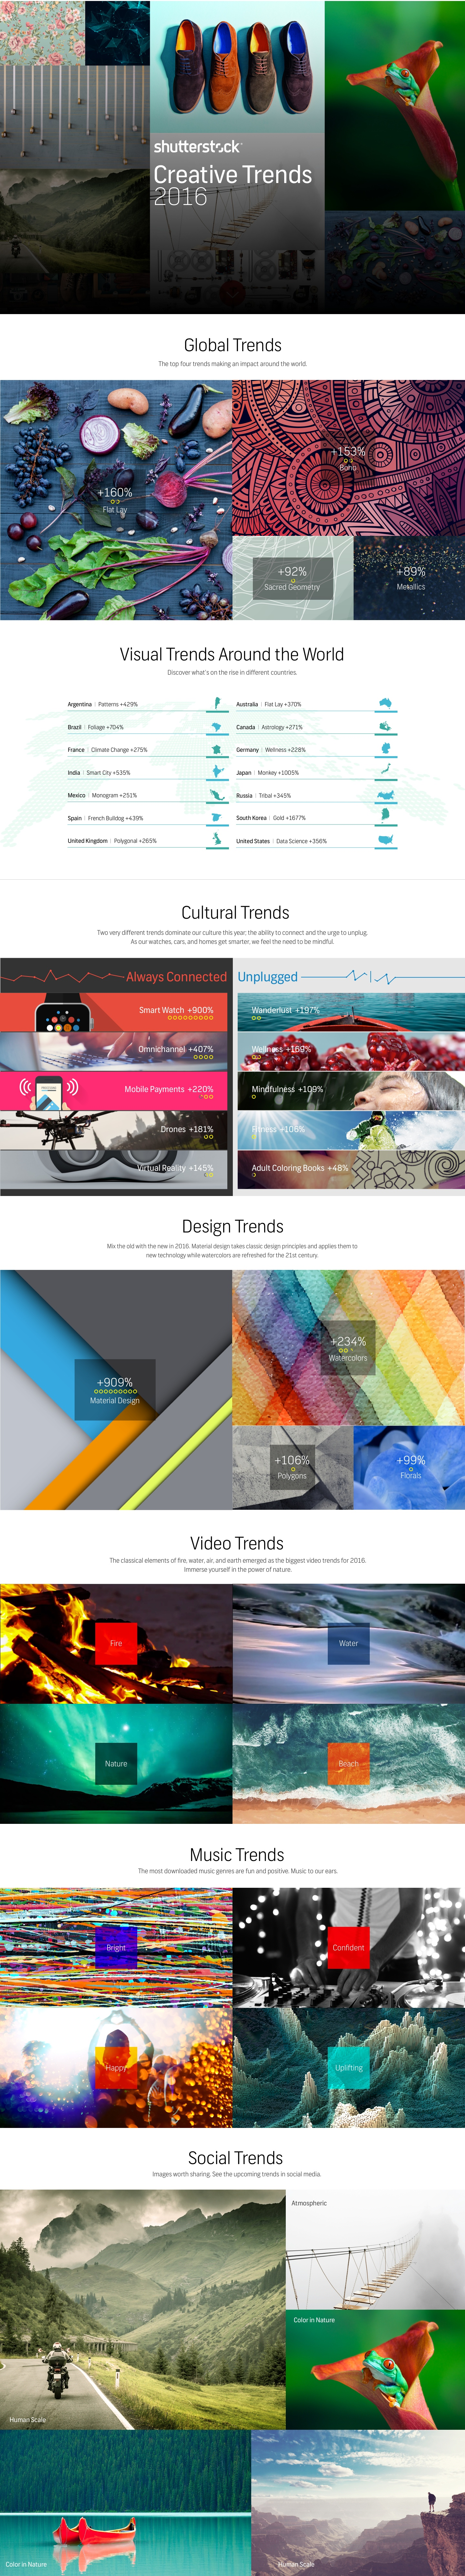 shutterstock-2016-creative-trends-infographic